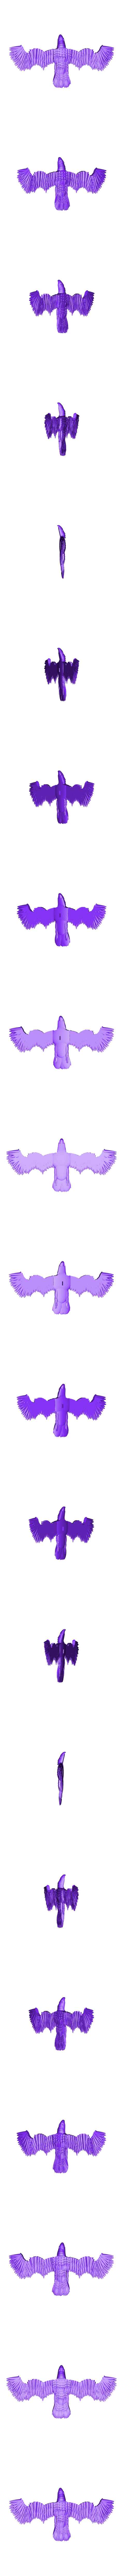 phoenix_with_hole.stl Download free STL file Elf Phoenix • 3D printing model, mrhers2